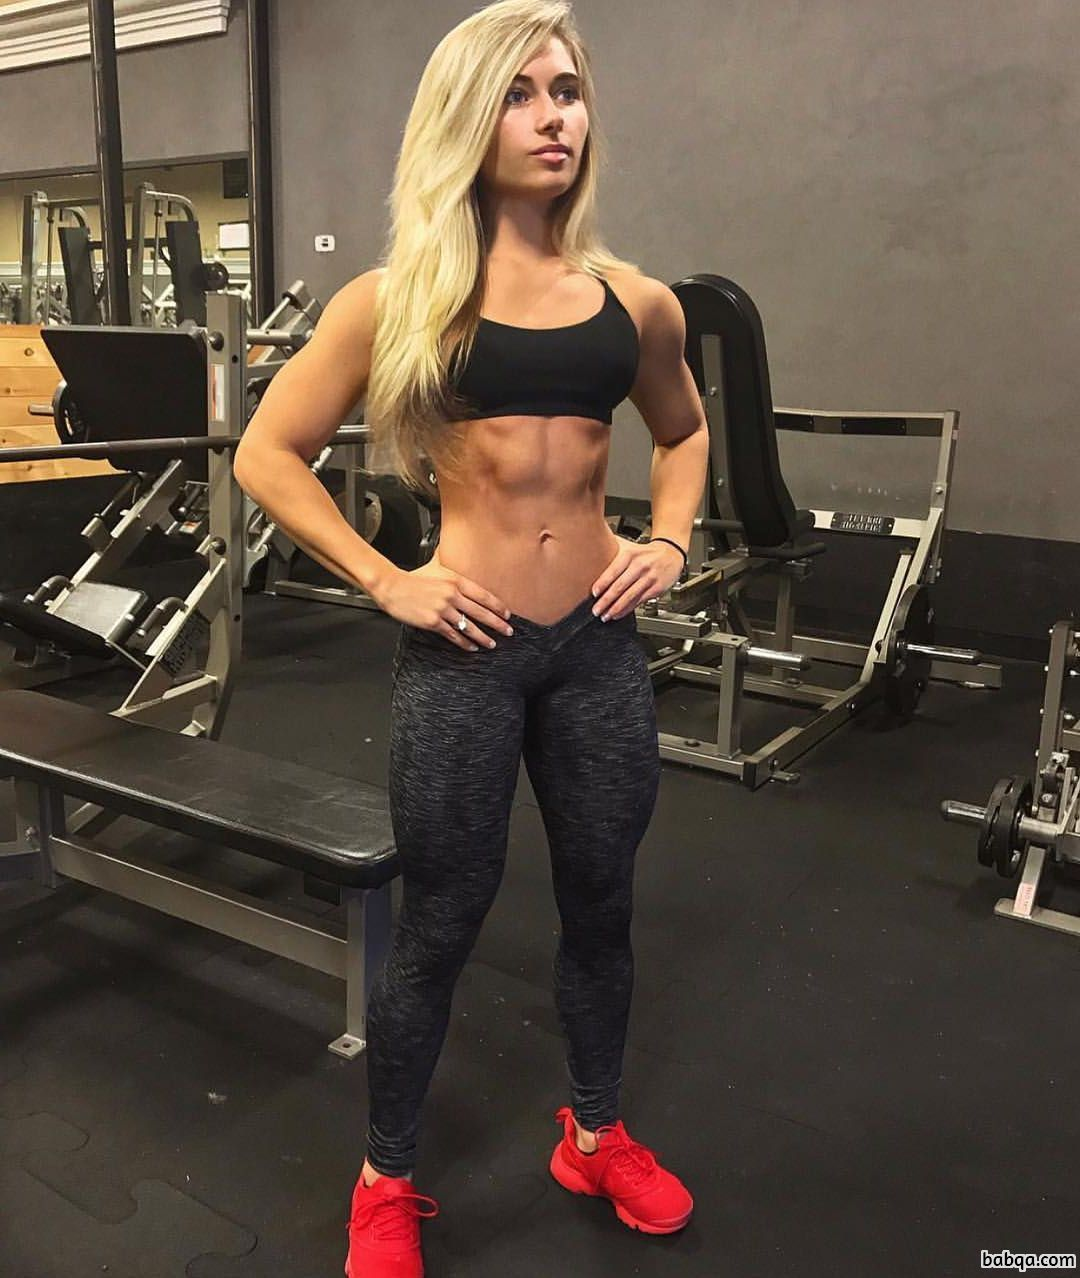 sexy female bodybuilder with muscle body and muscle ass pic from tumblr